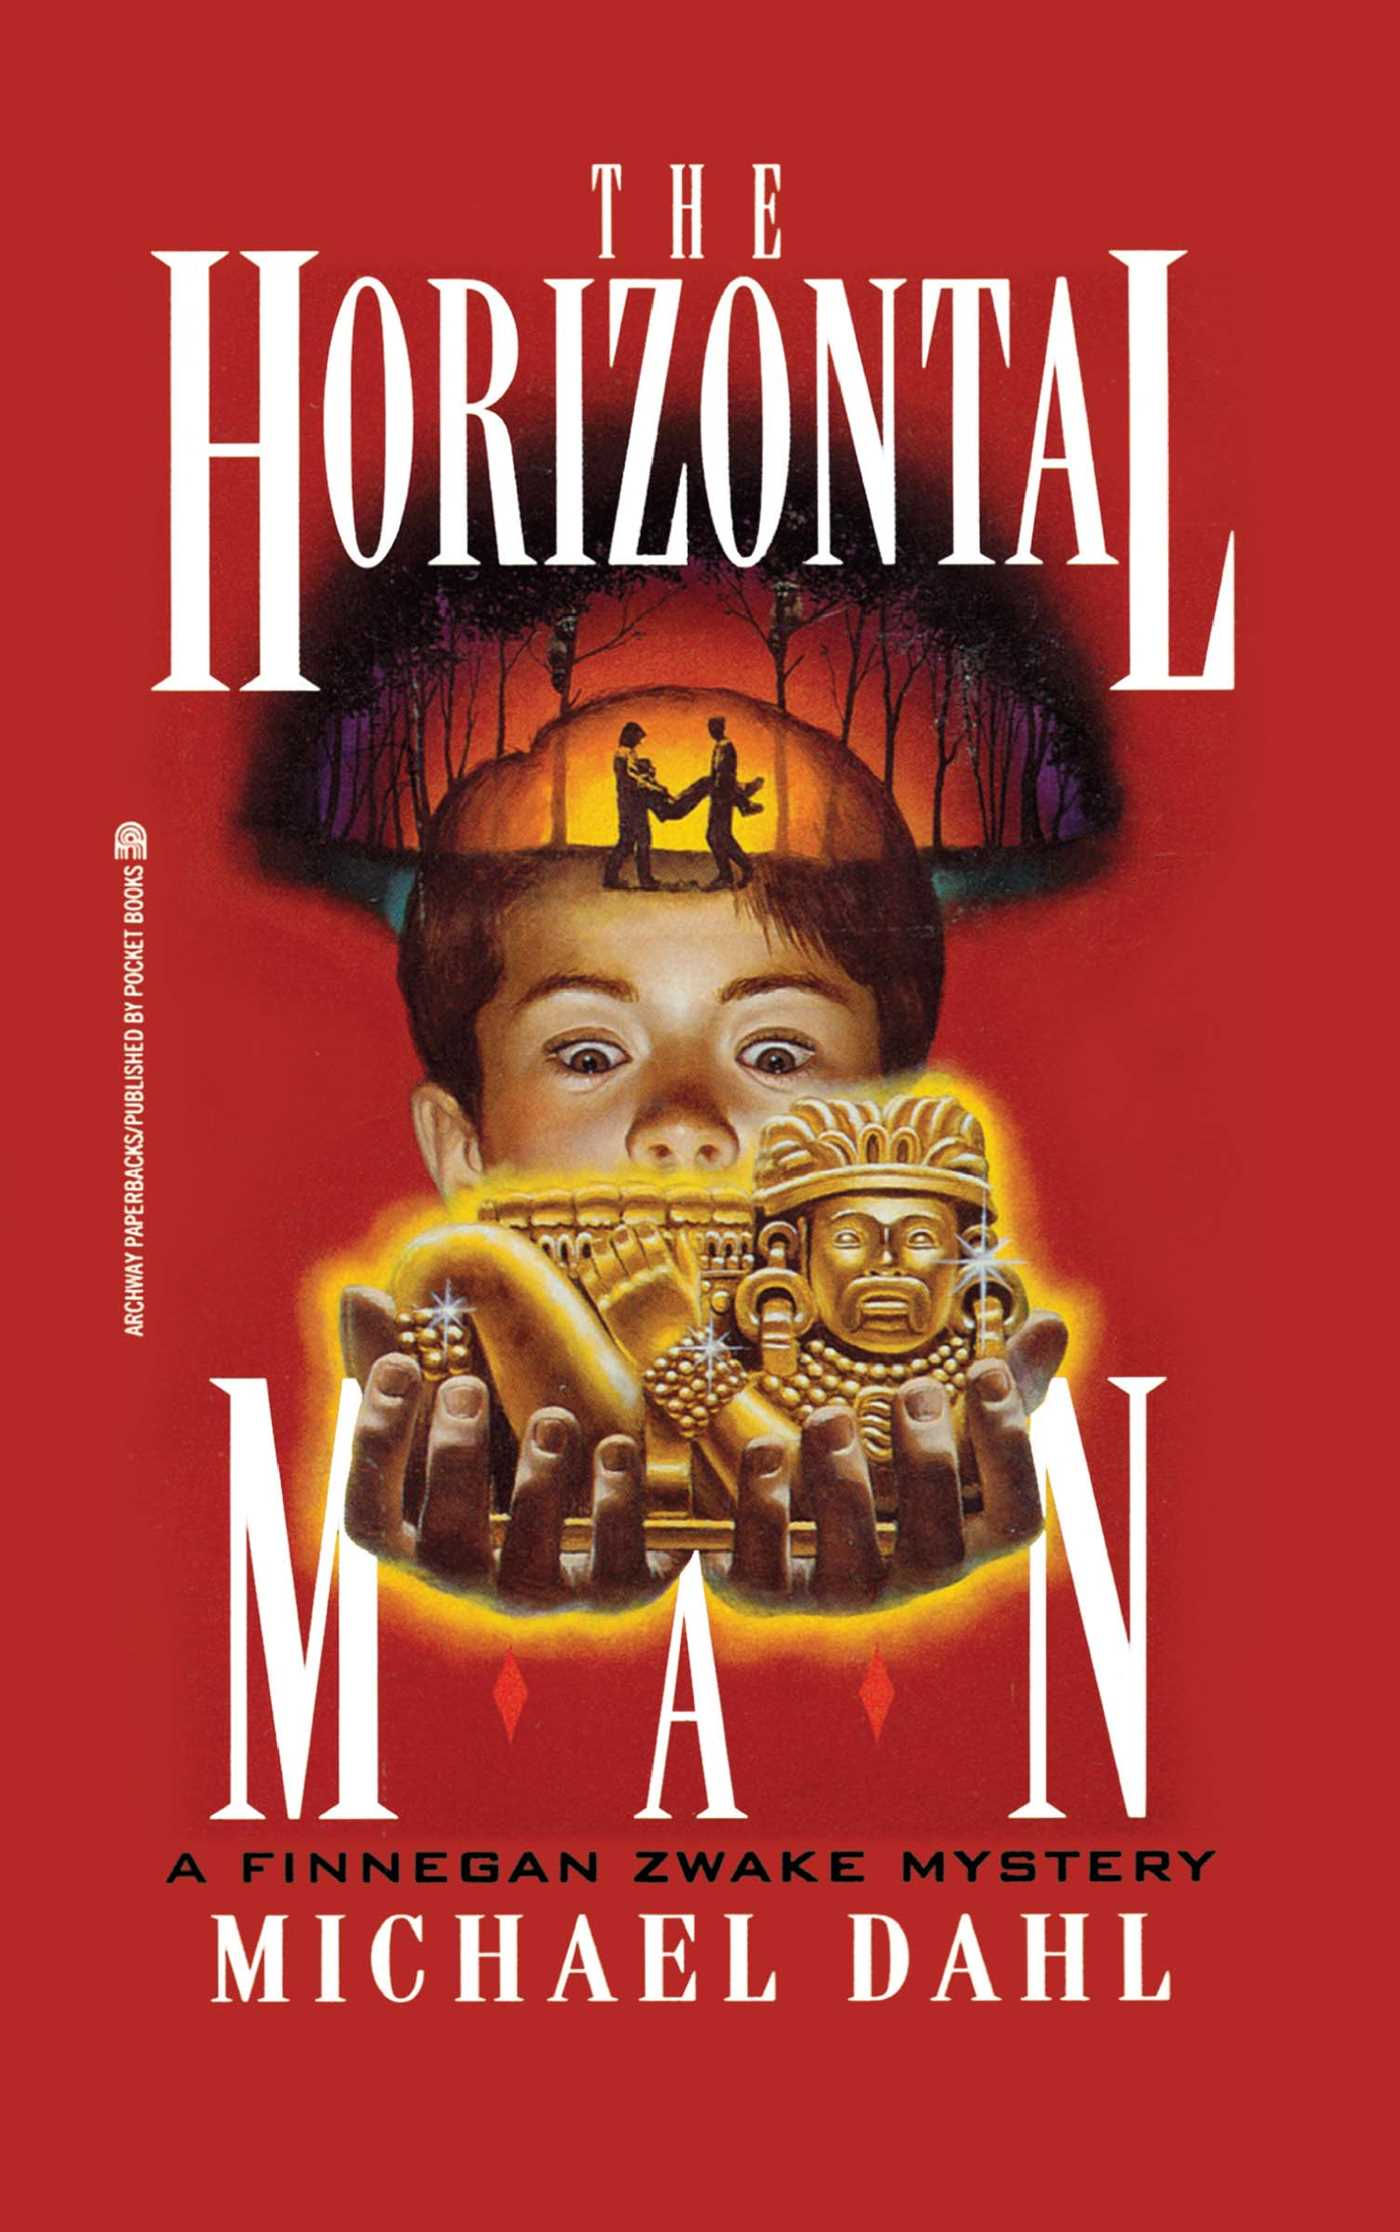 The horizontal man finnegan zwake 1 9781416986683 hr